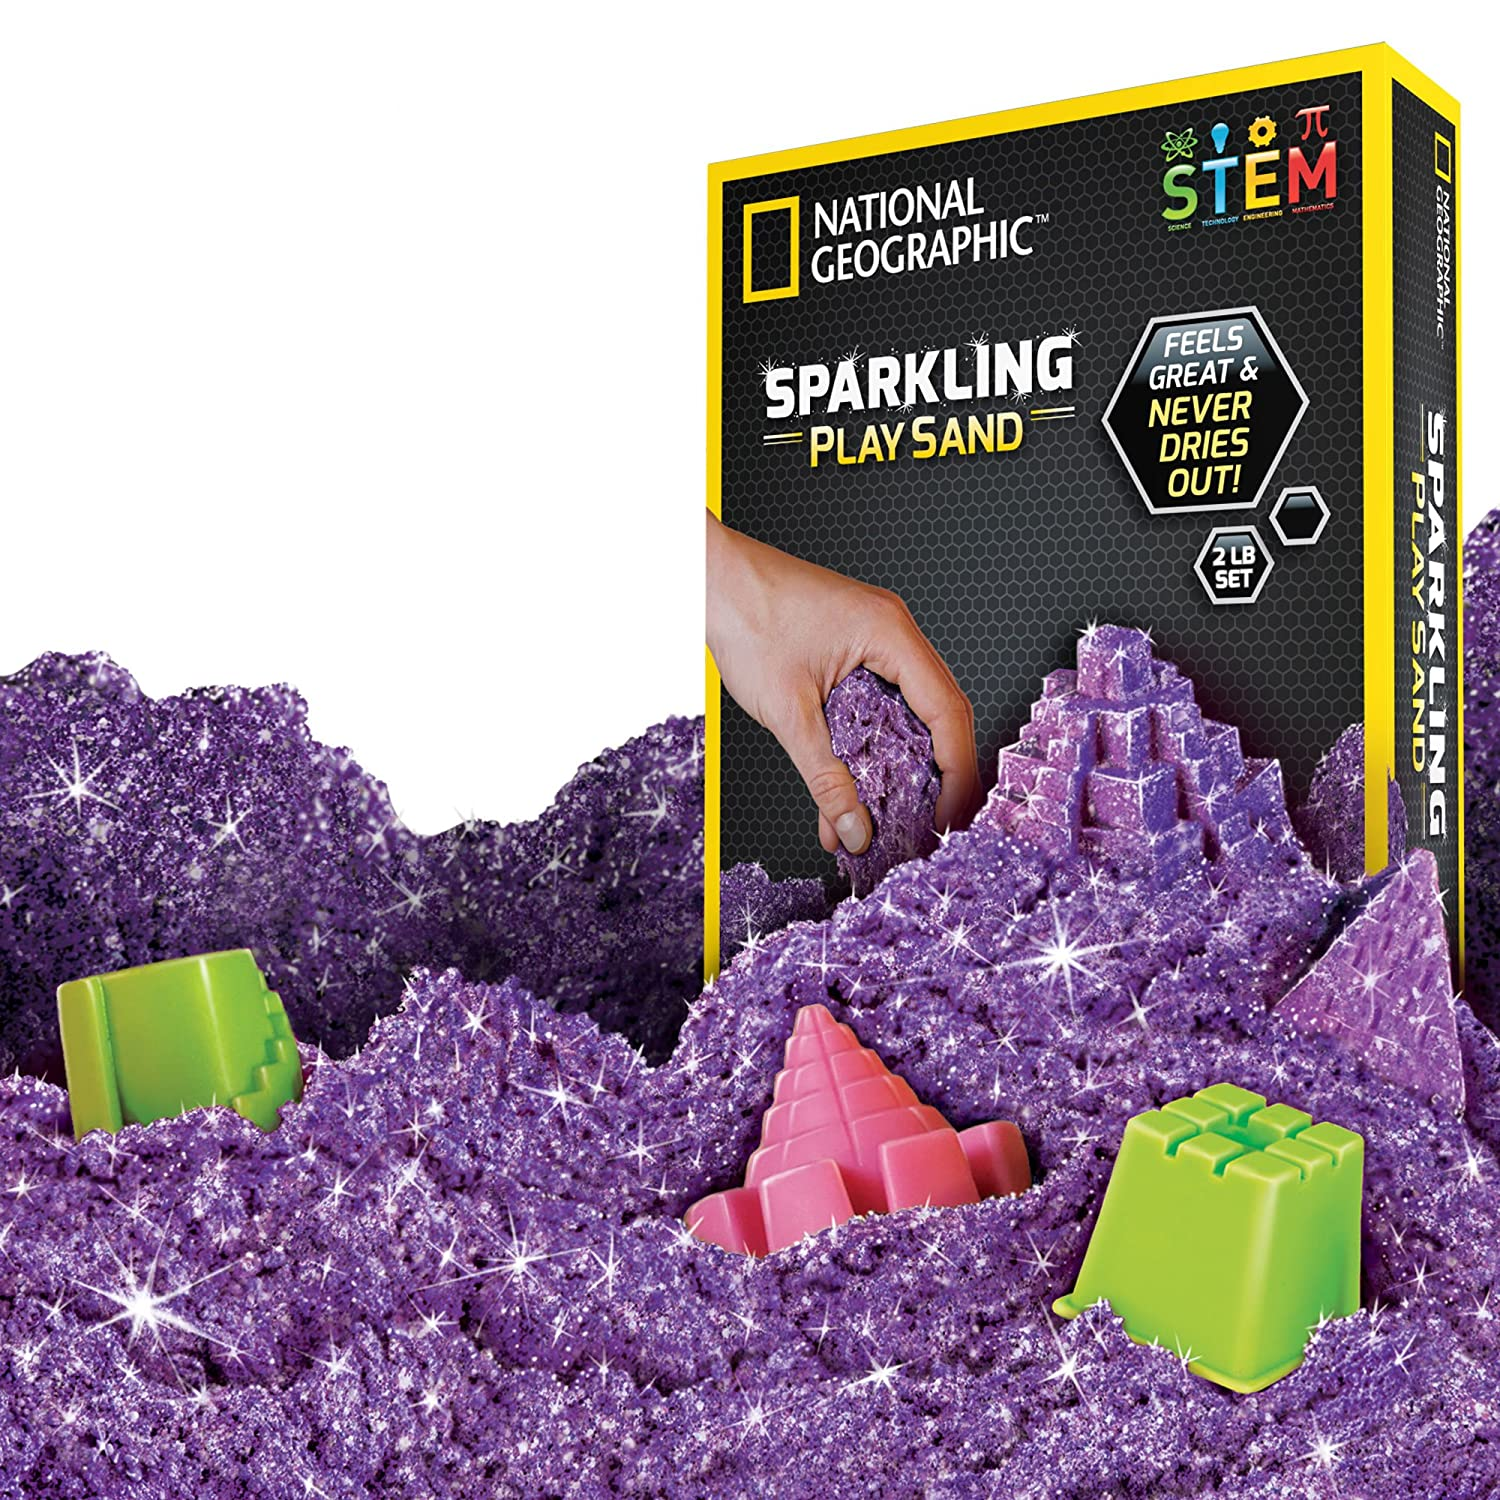 NATIONAL GEOGRAPHIC Sparkling Play Sand - 2 LBS of Shimmering Sand with Castle Molds and Tray (Pink) - A Kinetic Sensory Activity NGSANDSPK2